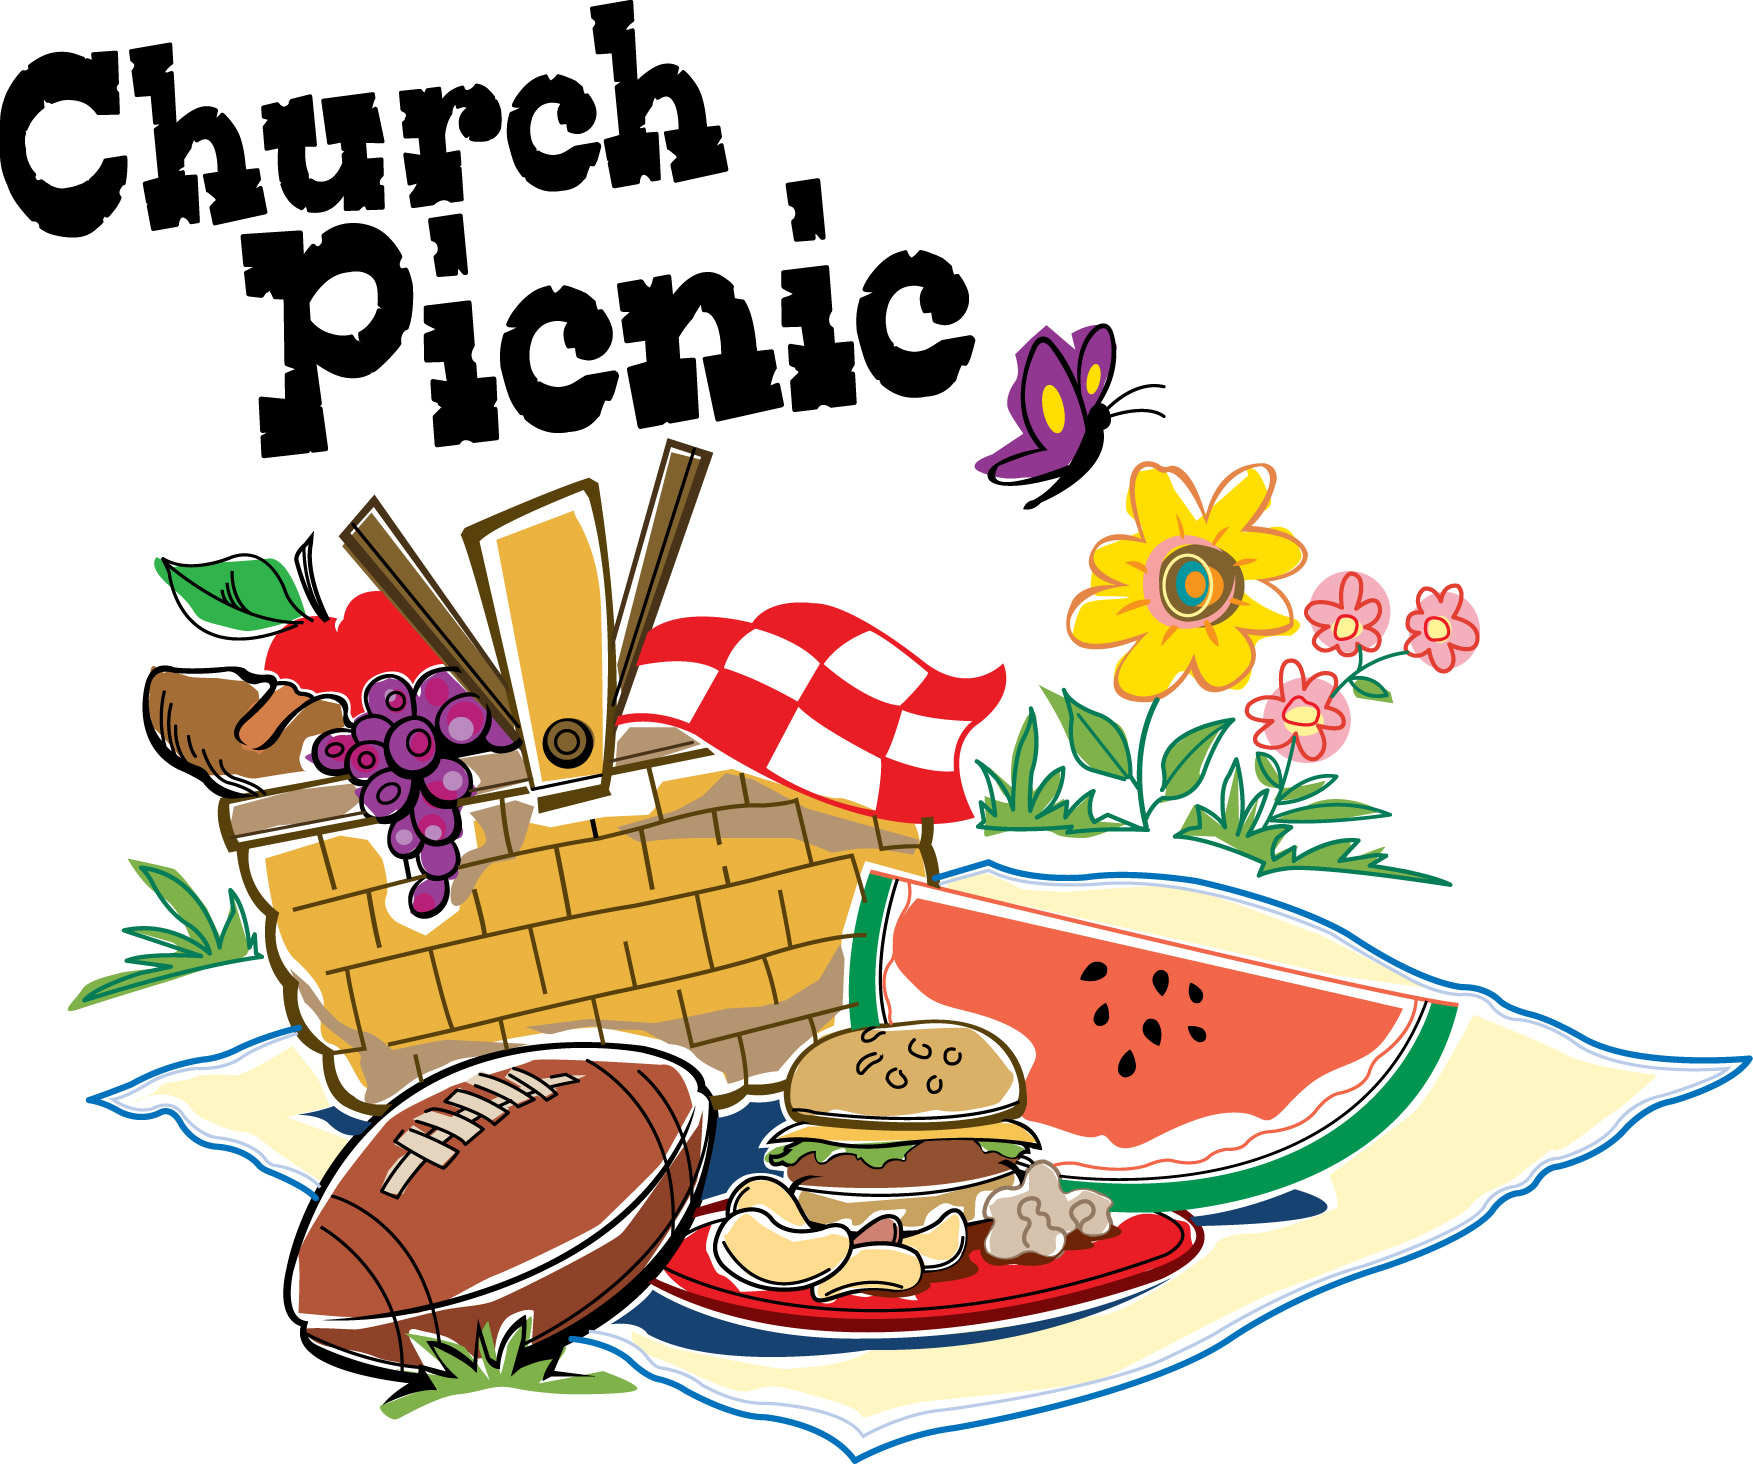 Church Fellowship Dinner Clipart.